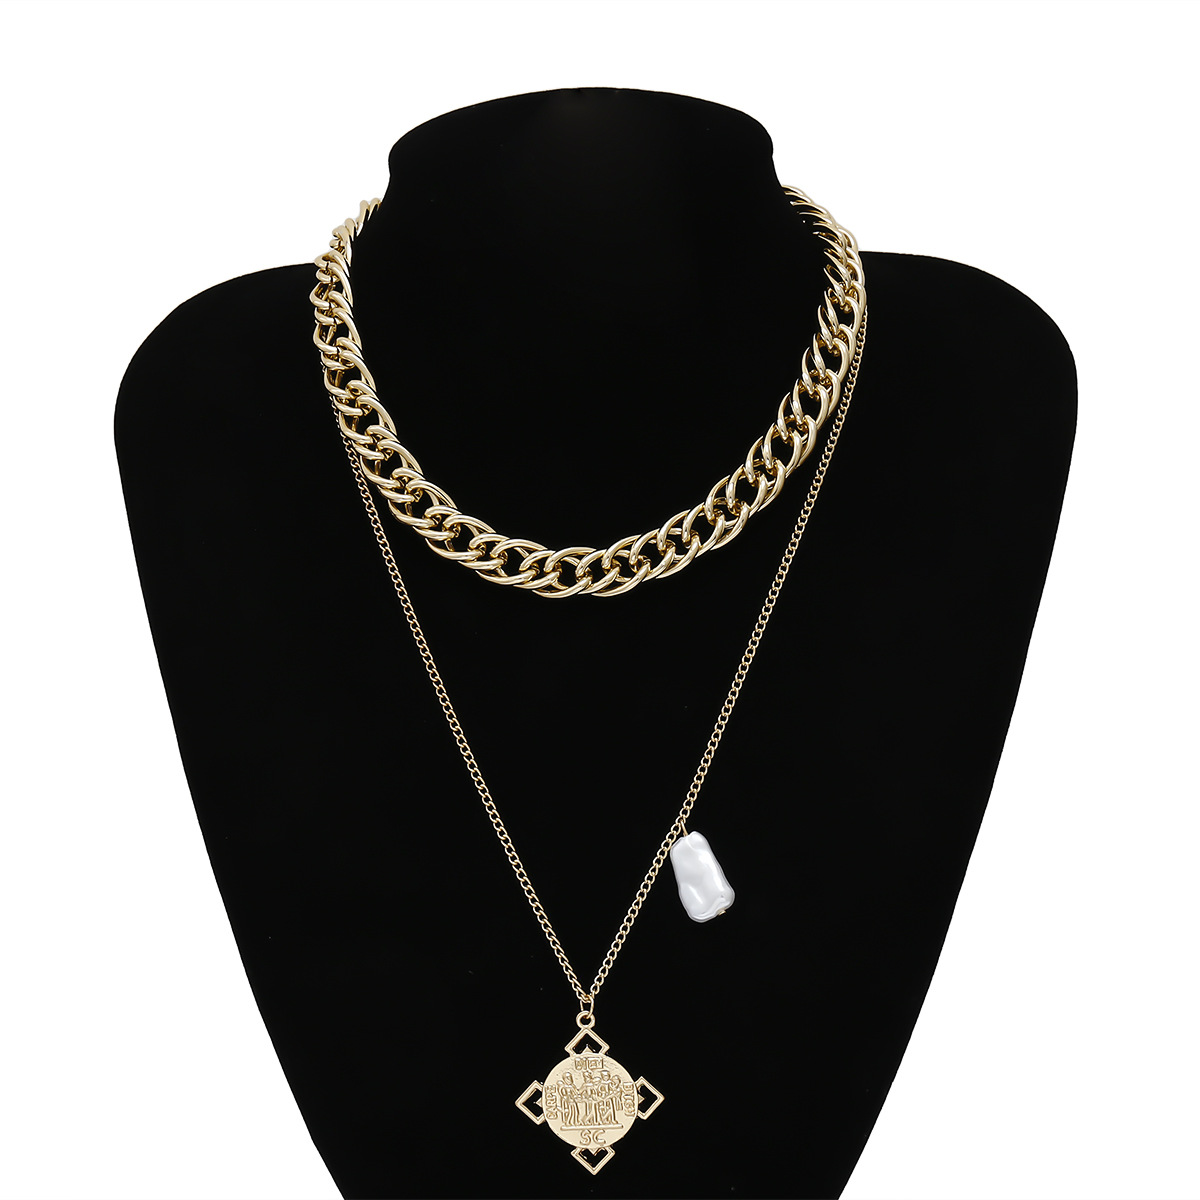 Fashion Geometric Three-dimensional Portrait Embossed Pearl Necklace Double Chain Necklace NHXR201315